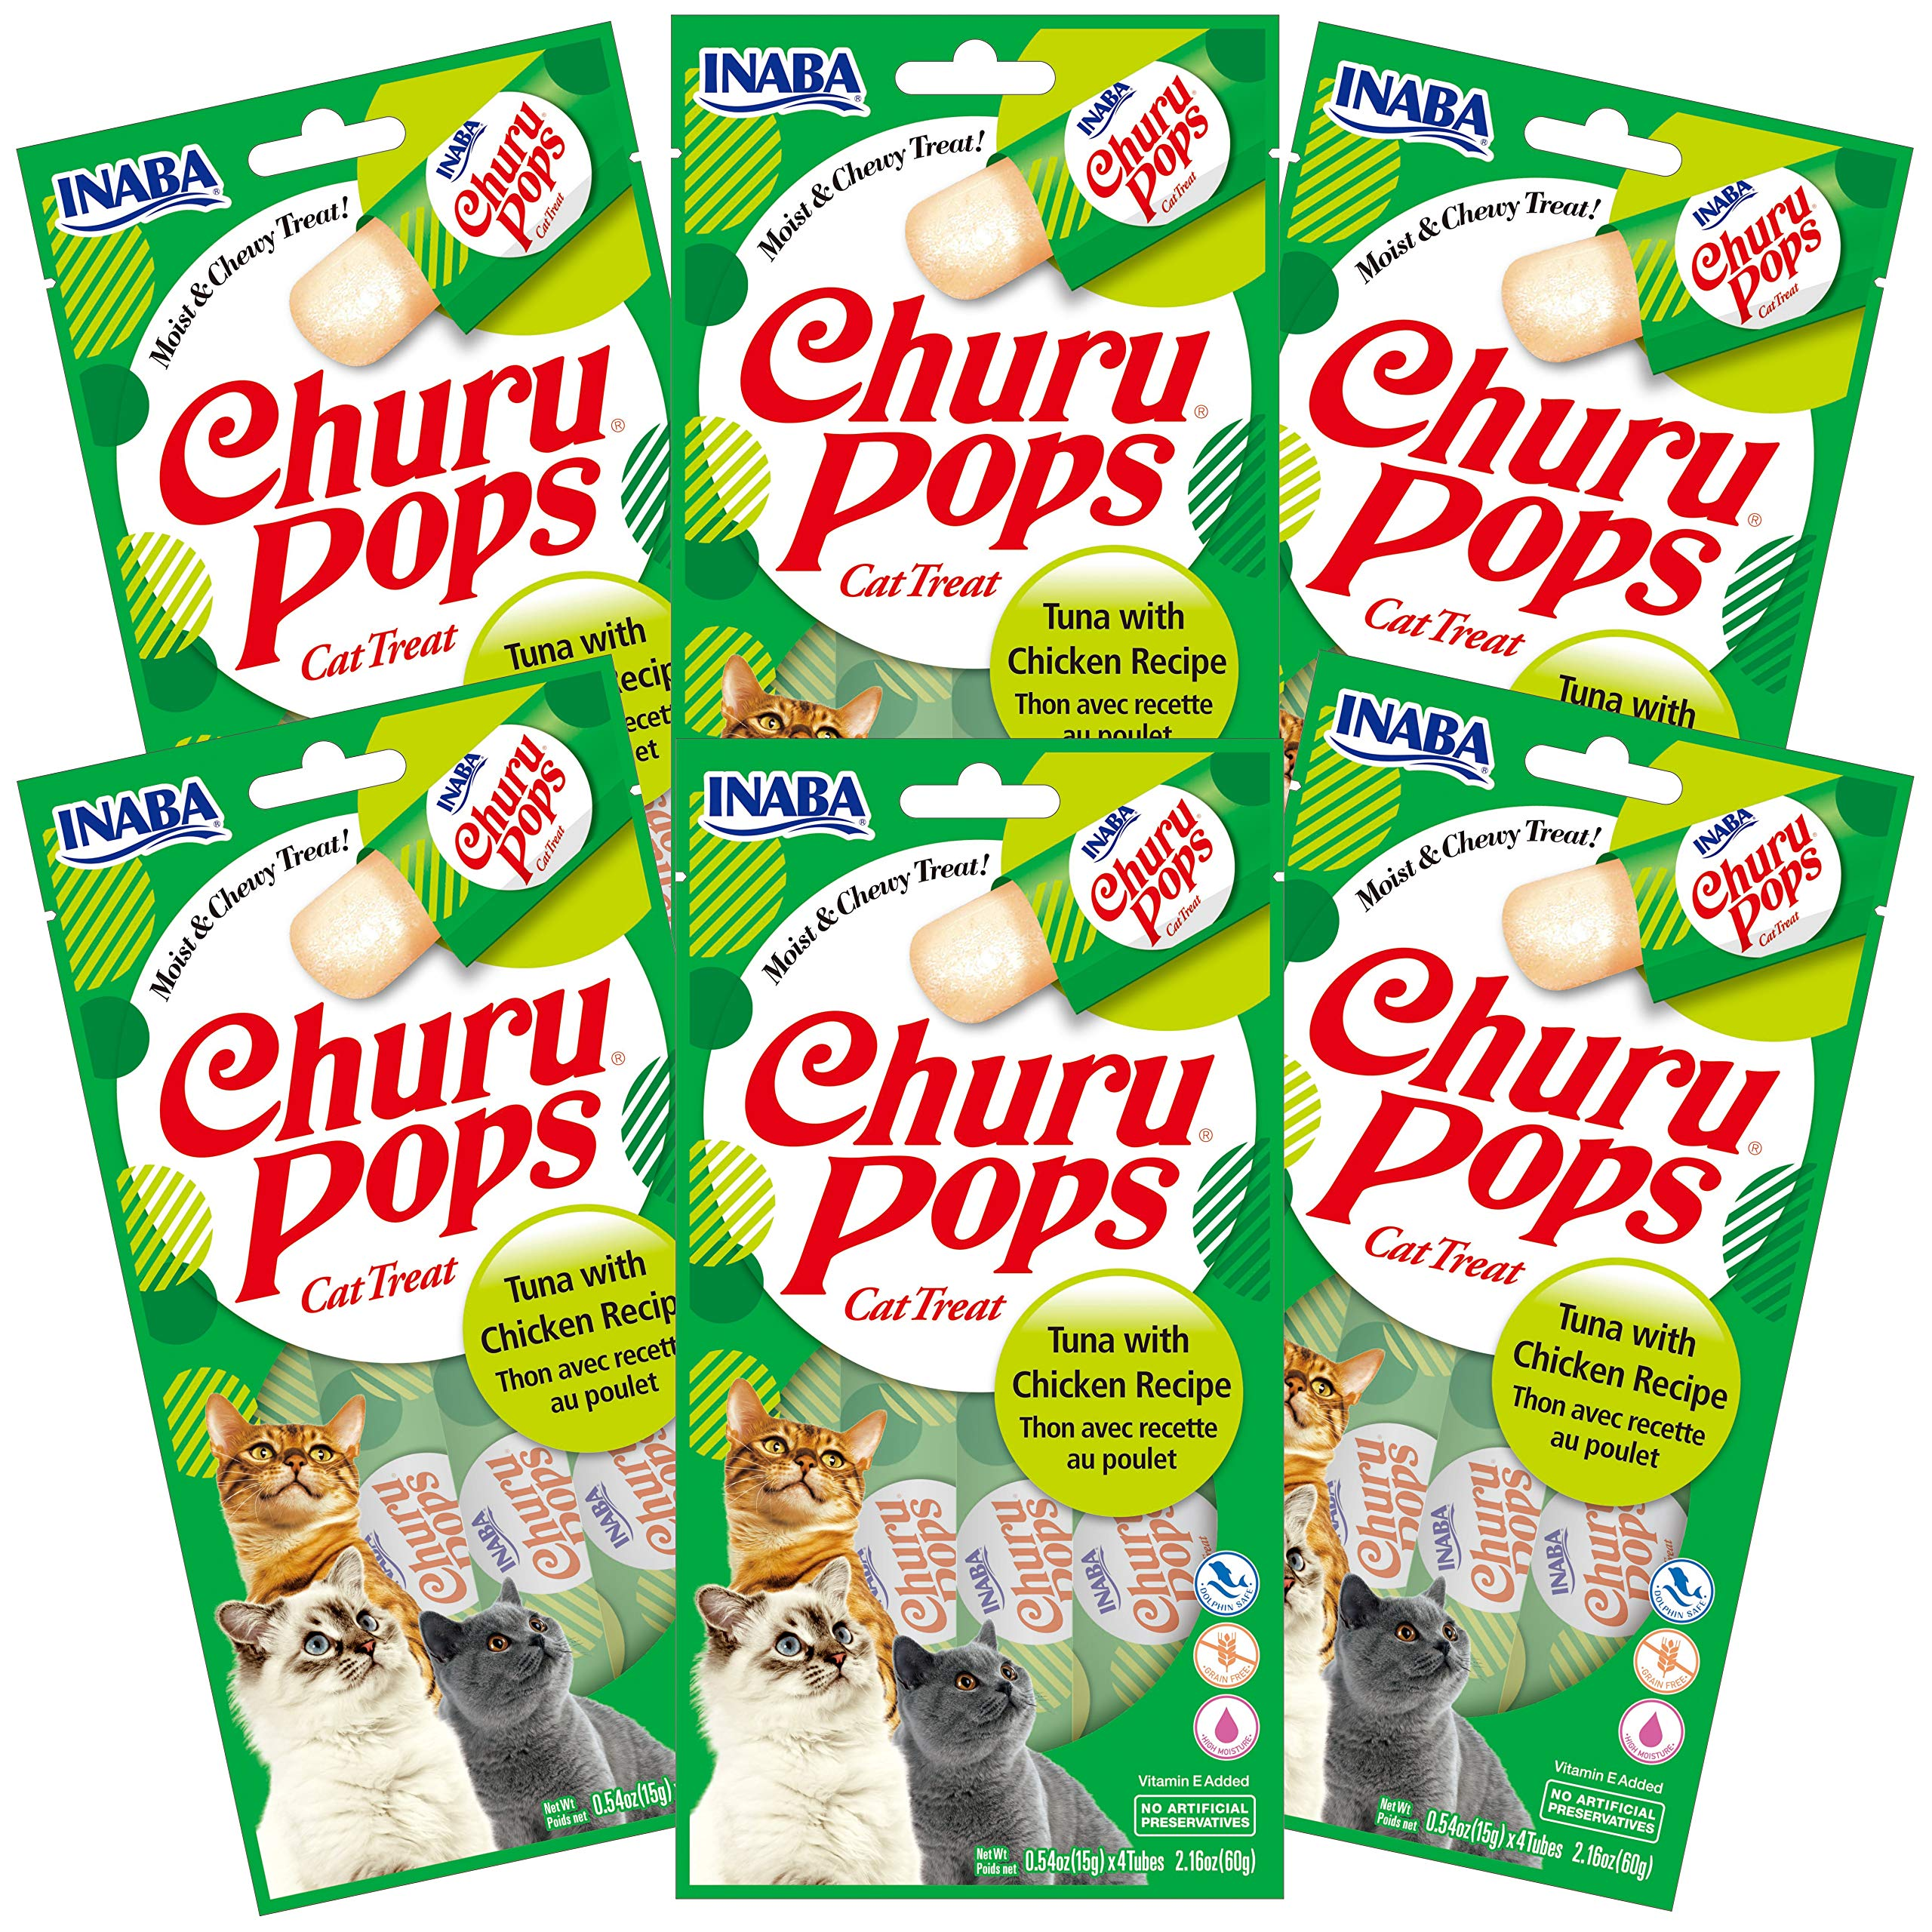 INABA Churu Pops Moist and Chewy Cat Treat Tuna with Chicken Recipe 24 Tubes by INABA